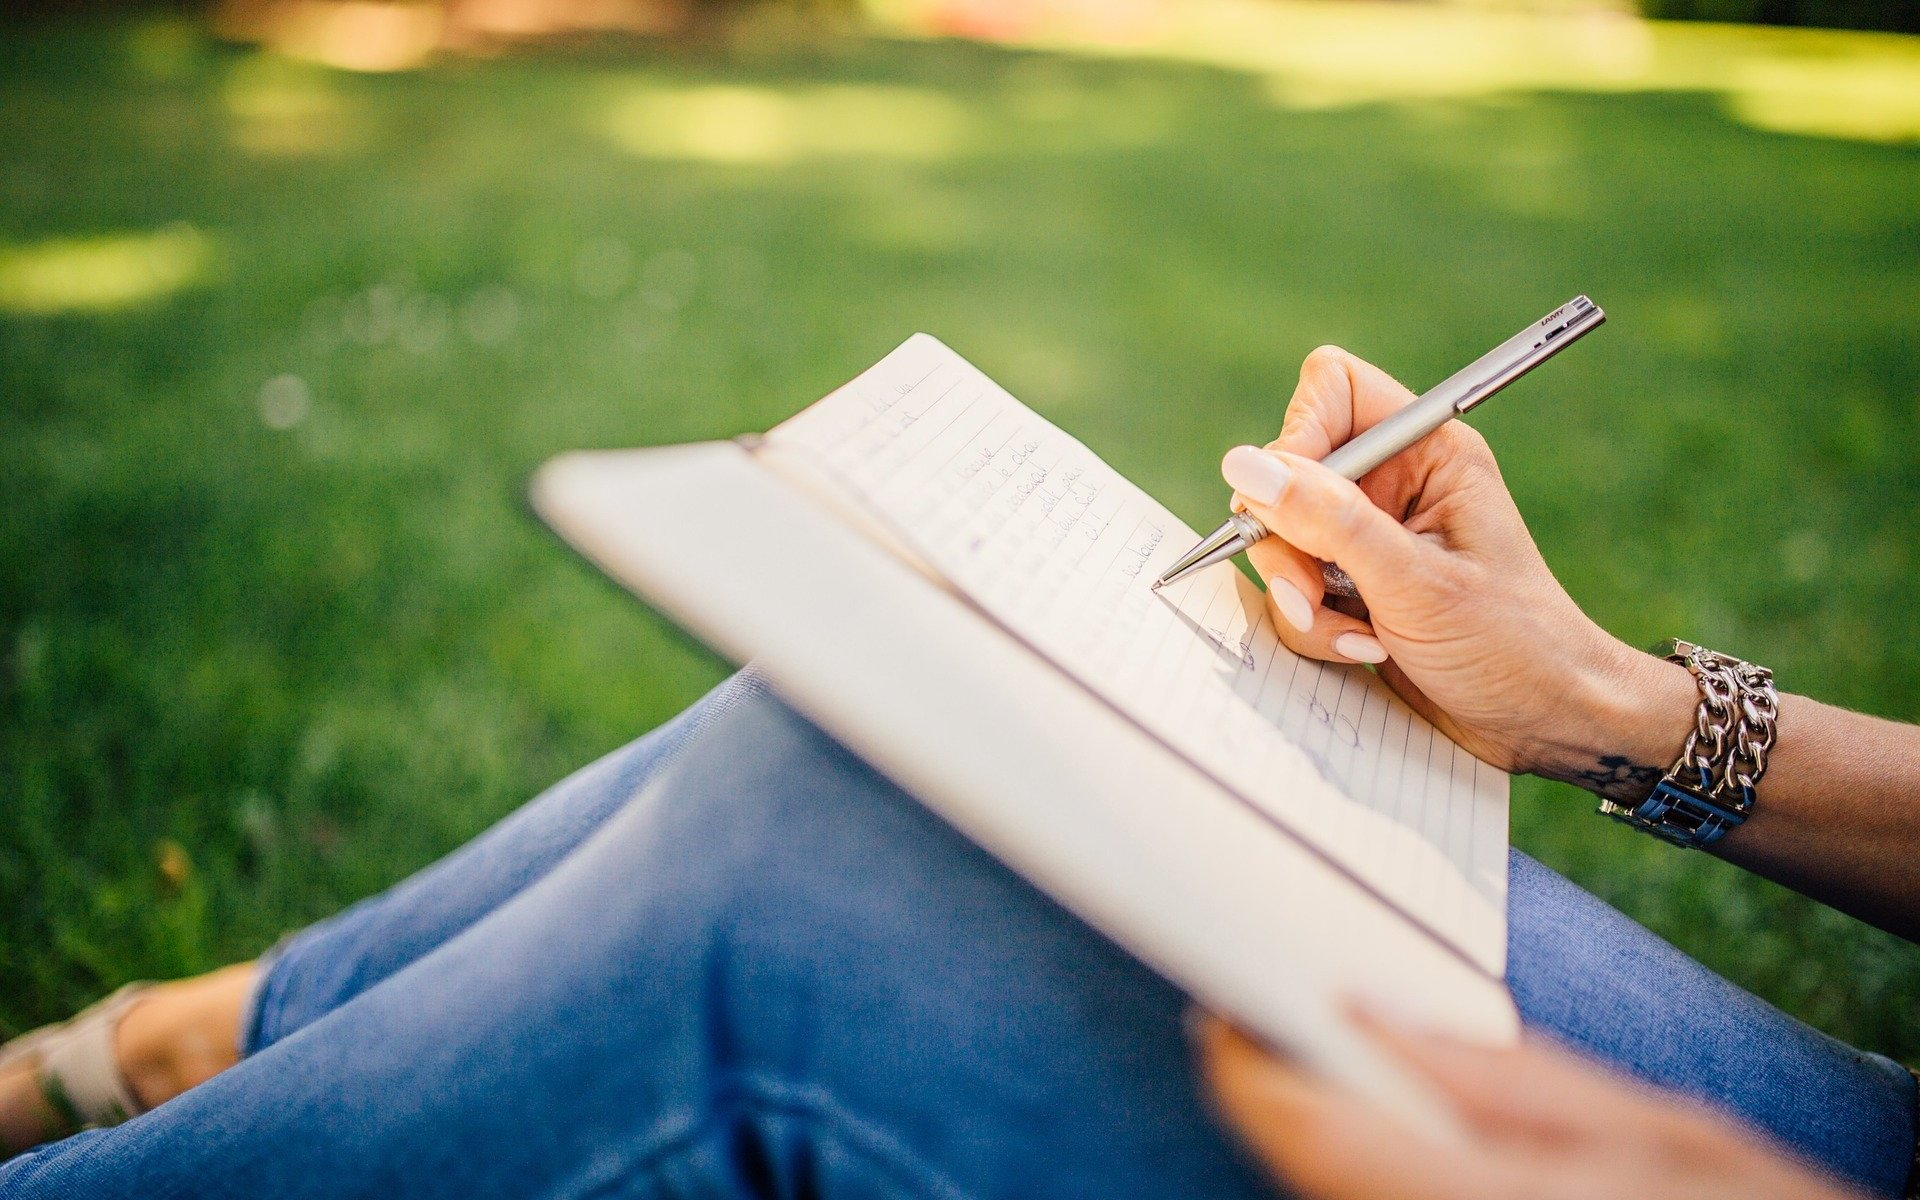 Girl writing with a pen and paper just showing her knees wearing blue jeans